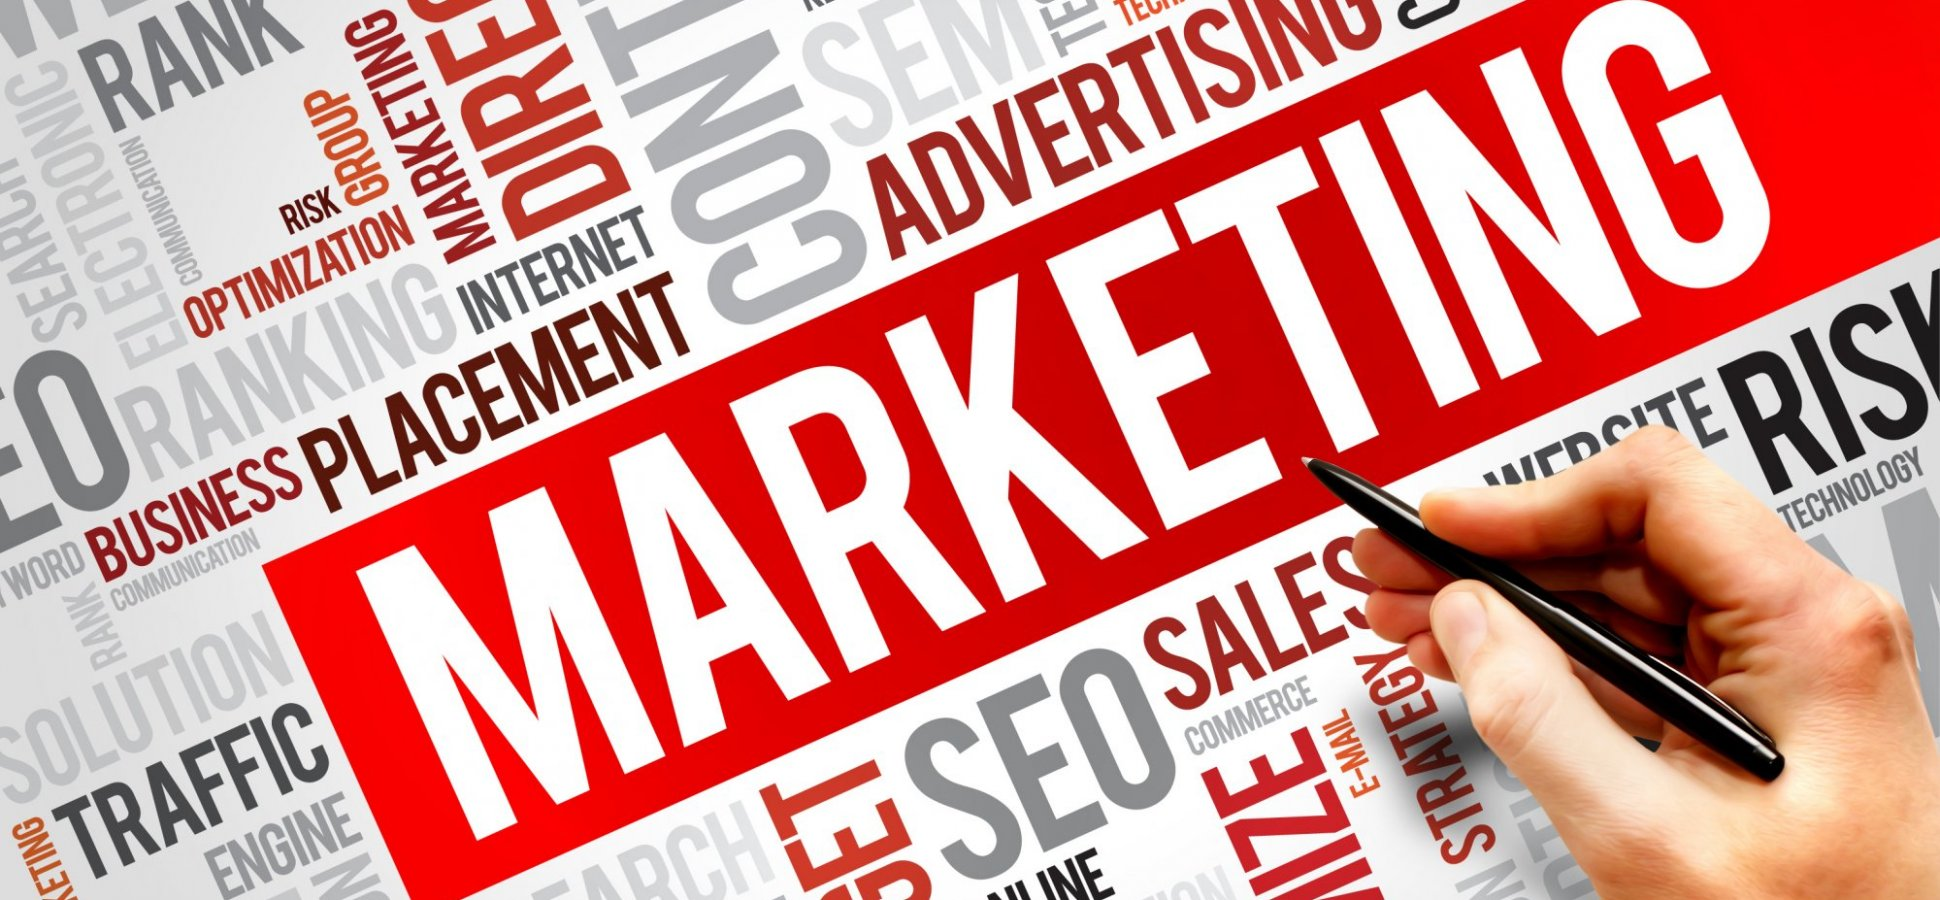 Business Marketing, Marketing, Advertising, Sales, Conversions, Strategy